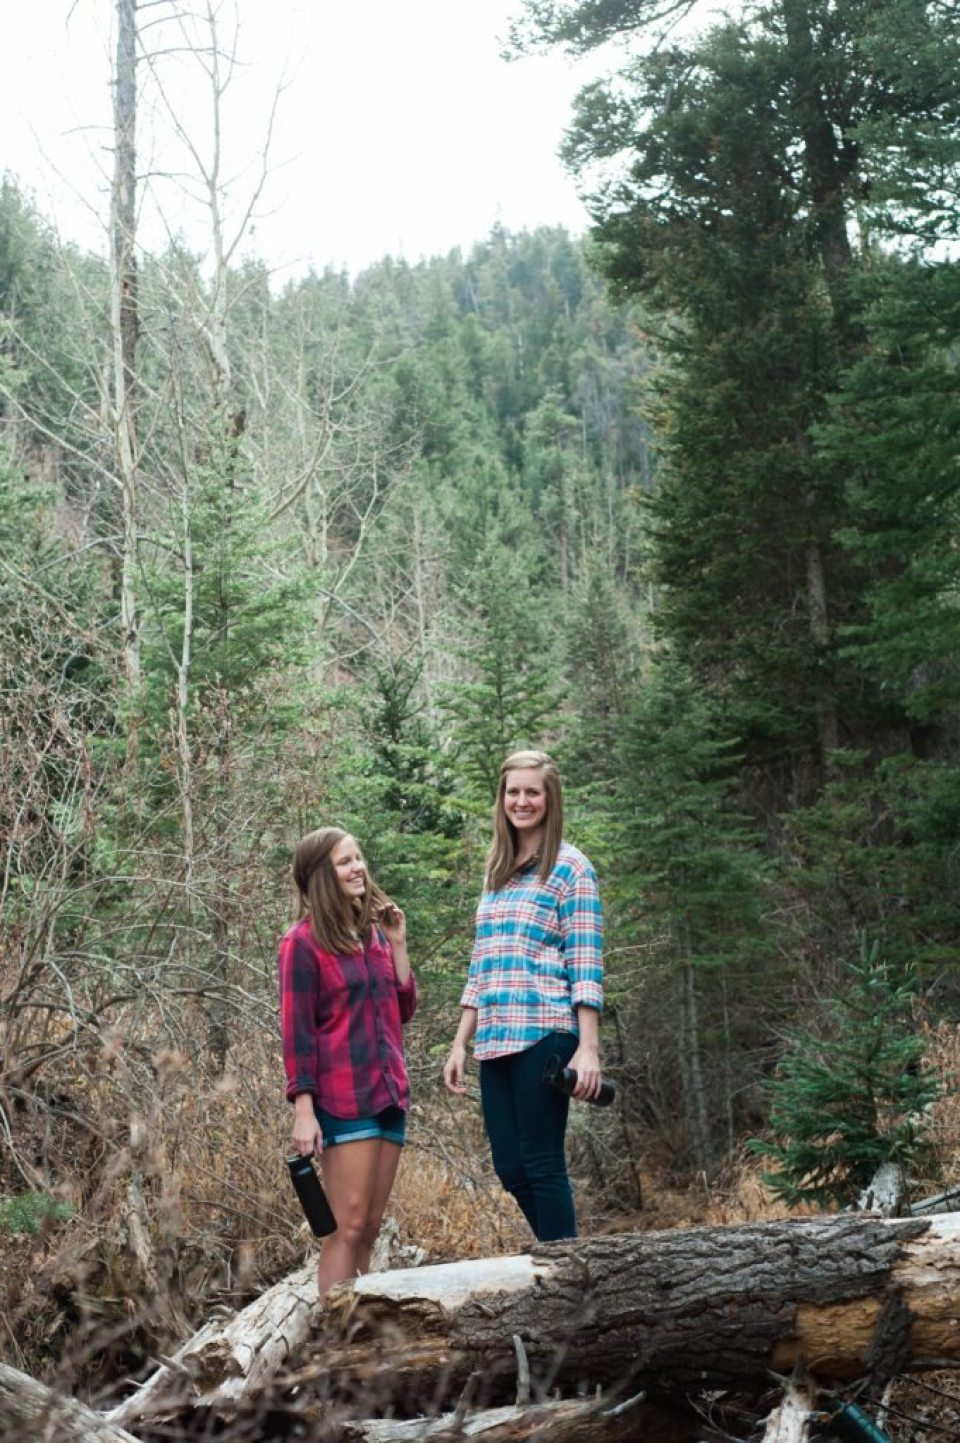 Colorado hiking at St. Mary's Falls in Cheyenne Canyon. Love layering with flannels for hiking & bringing along Stanley Brand! #stanleyness